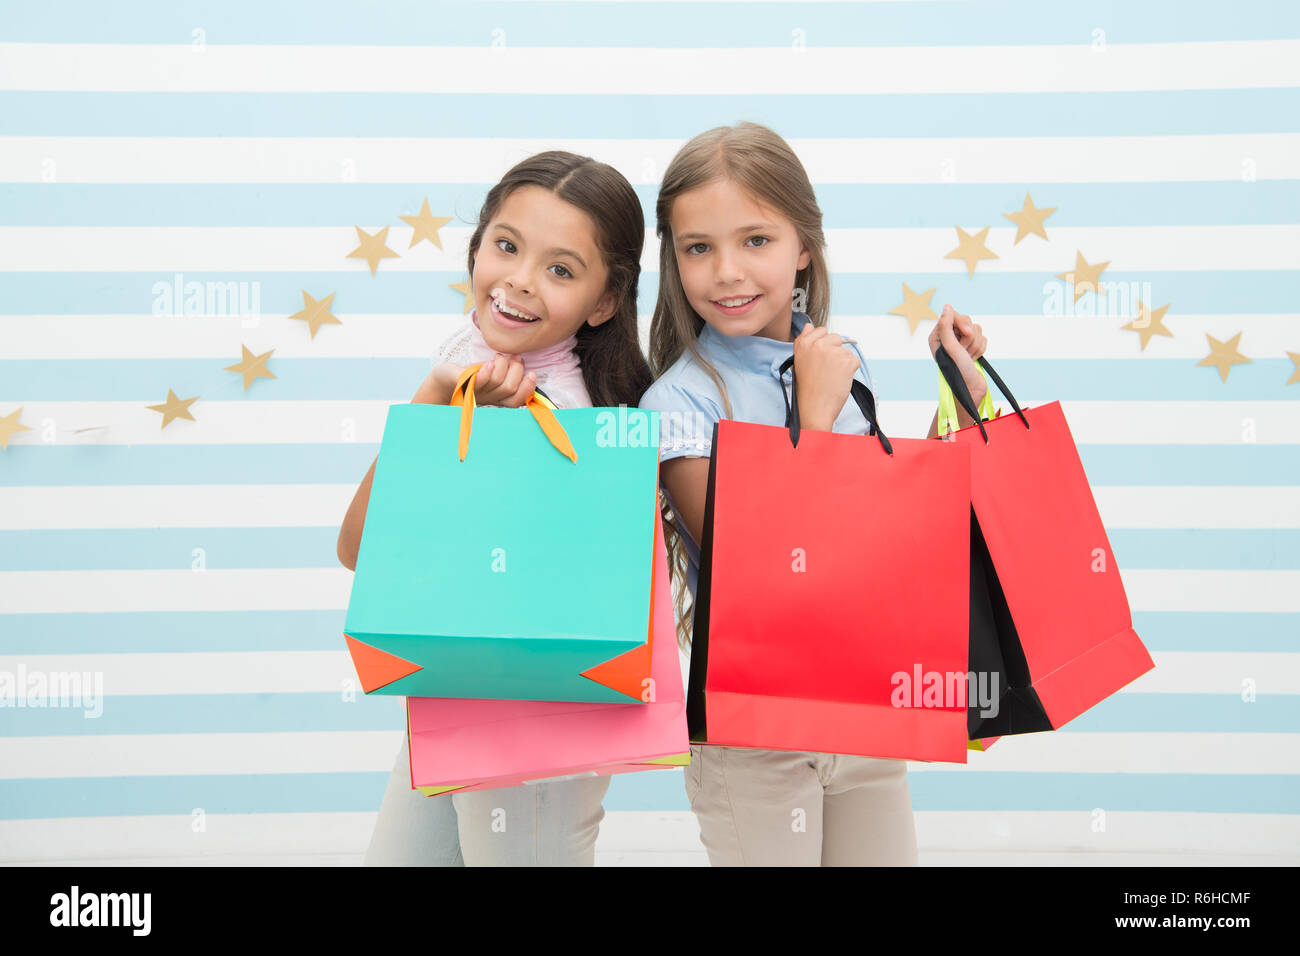 Obsessed with shopping and clothing malls. Discount concept. Kids cute girls hold shopping bags. Shopping discount season. Spending great time together. Children satisfied shopping striped background. - Stock Image